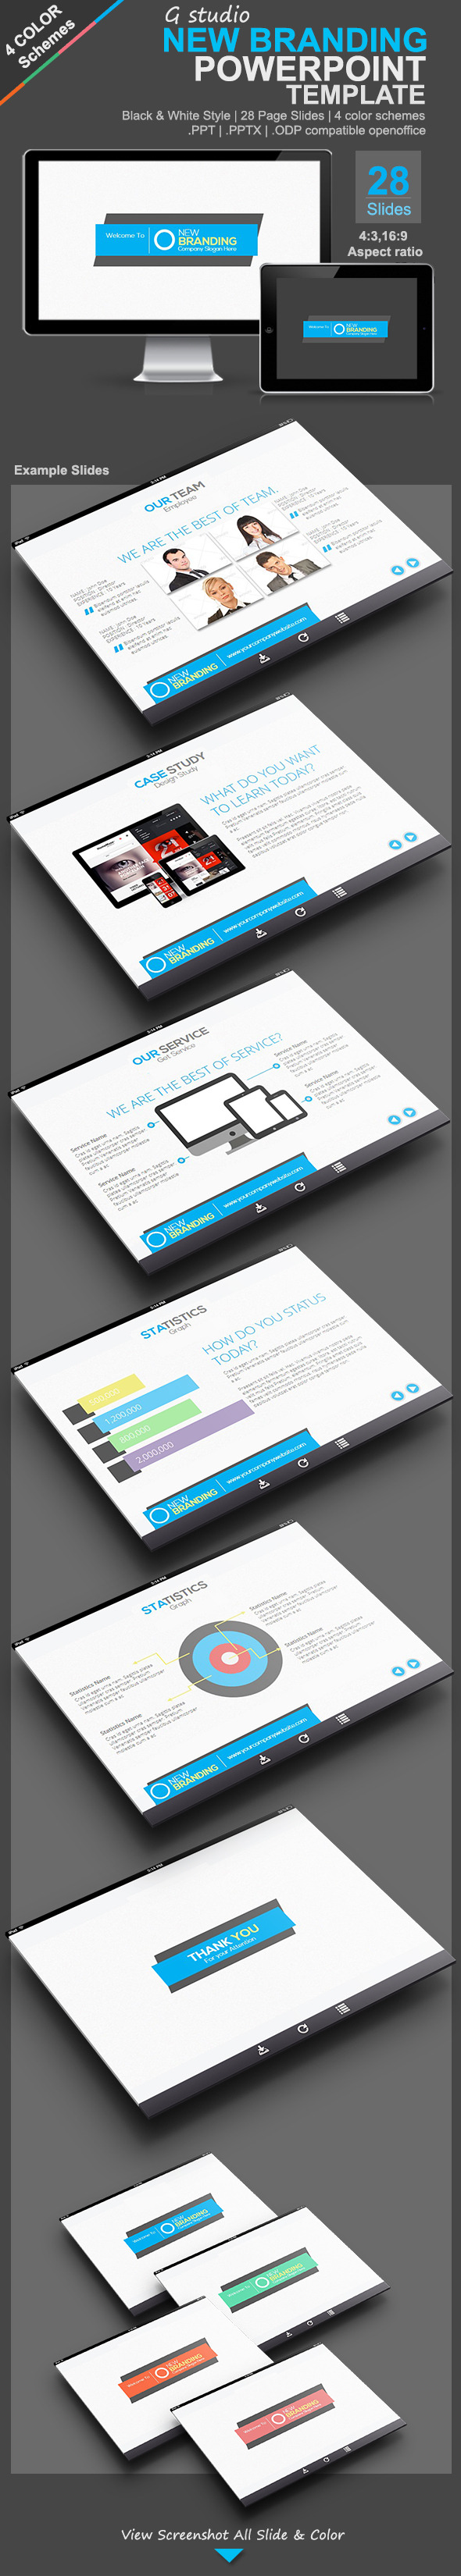 Gstudio New Branding Presentation Template - Creative Powerpoint Templates